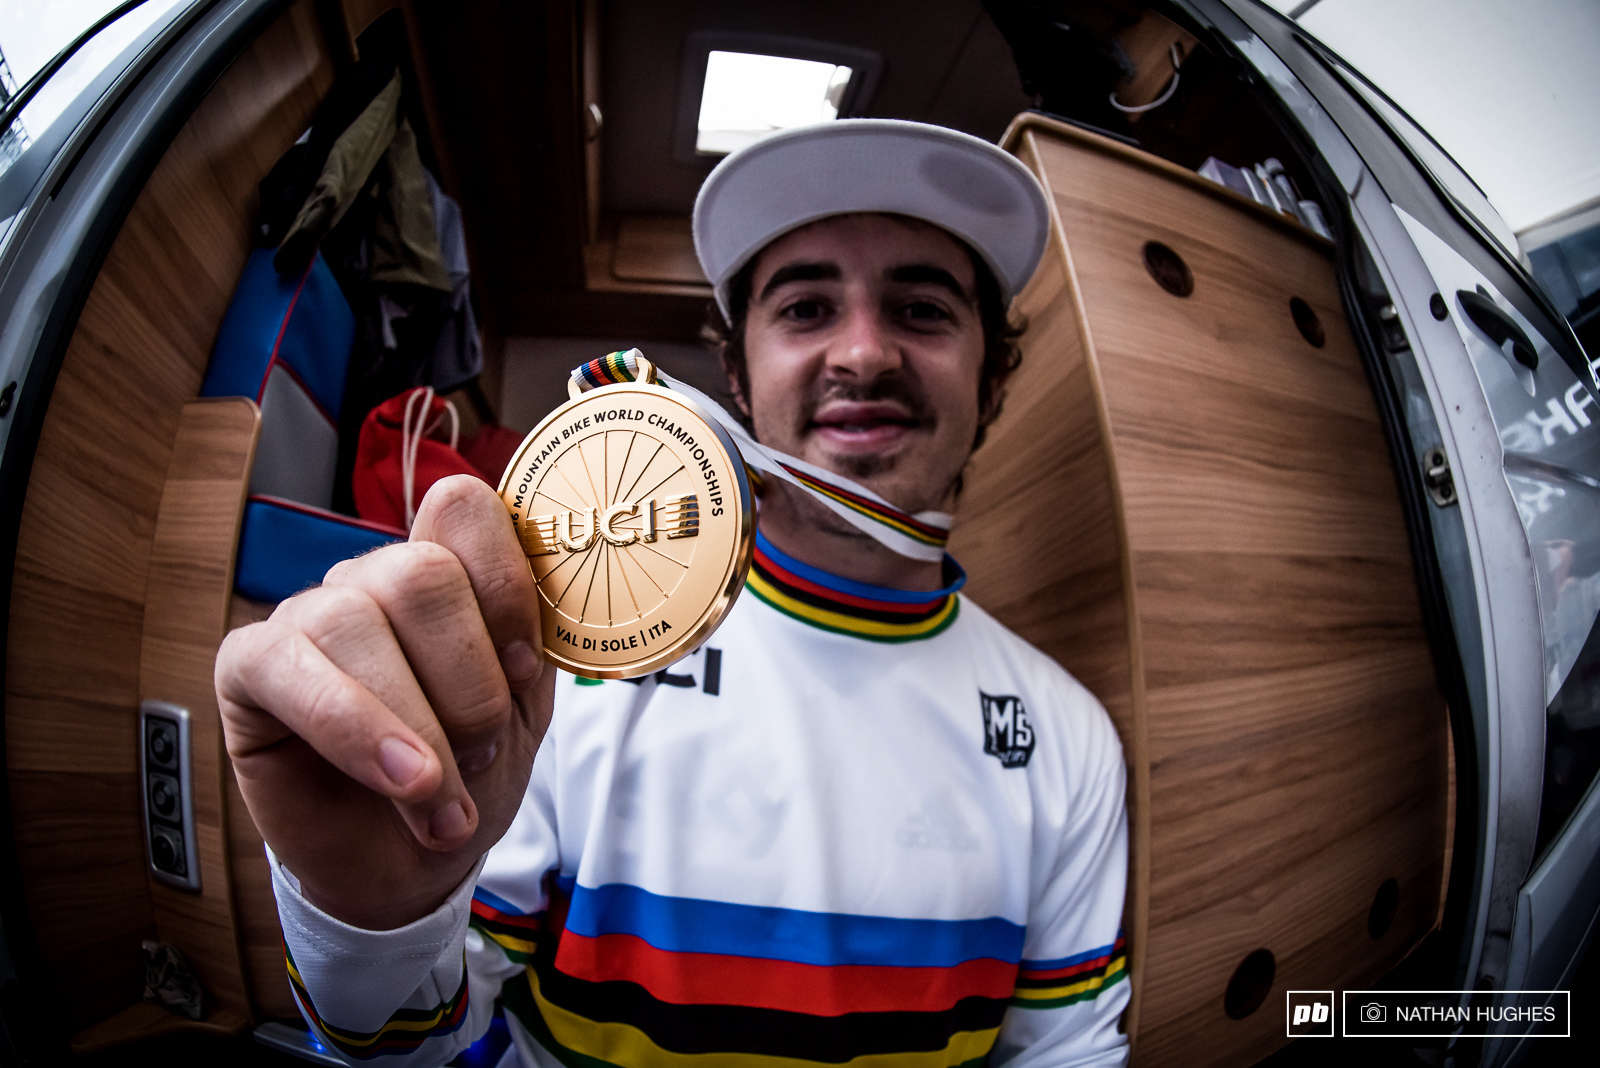 Five years later Danny Hart reclaims the stripes and claims gold here in the Italian dust.